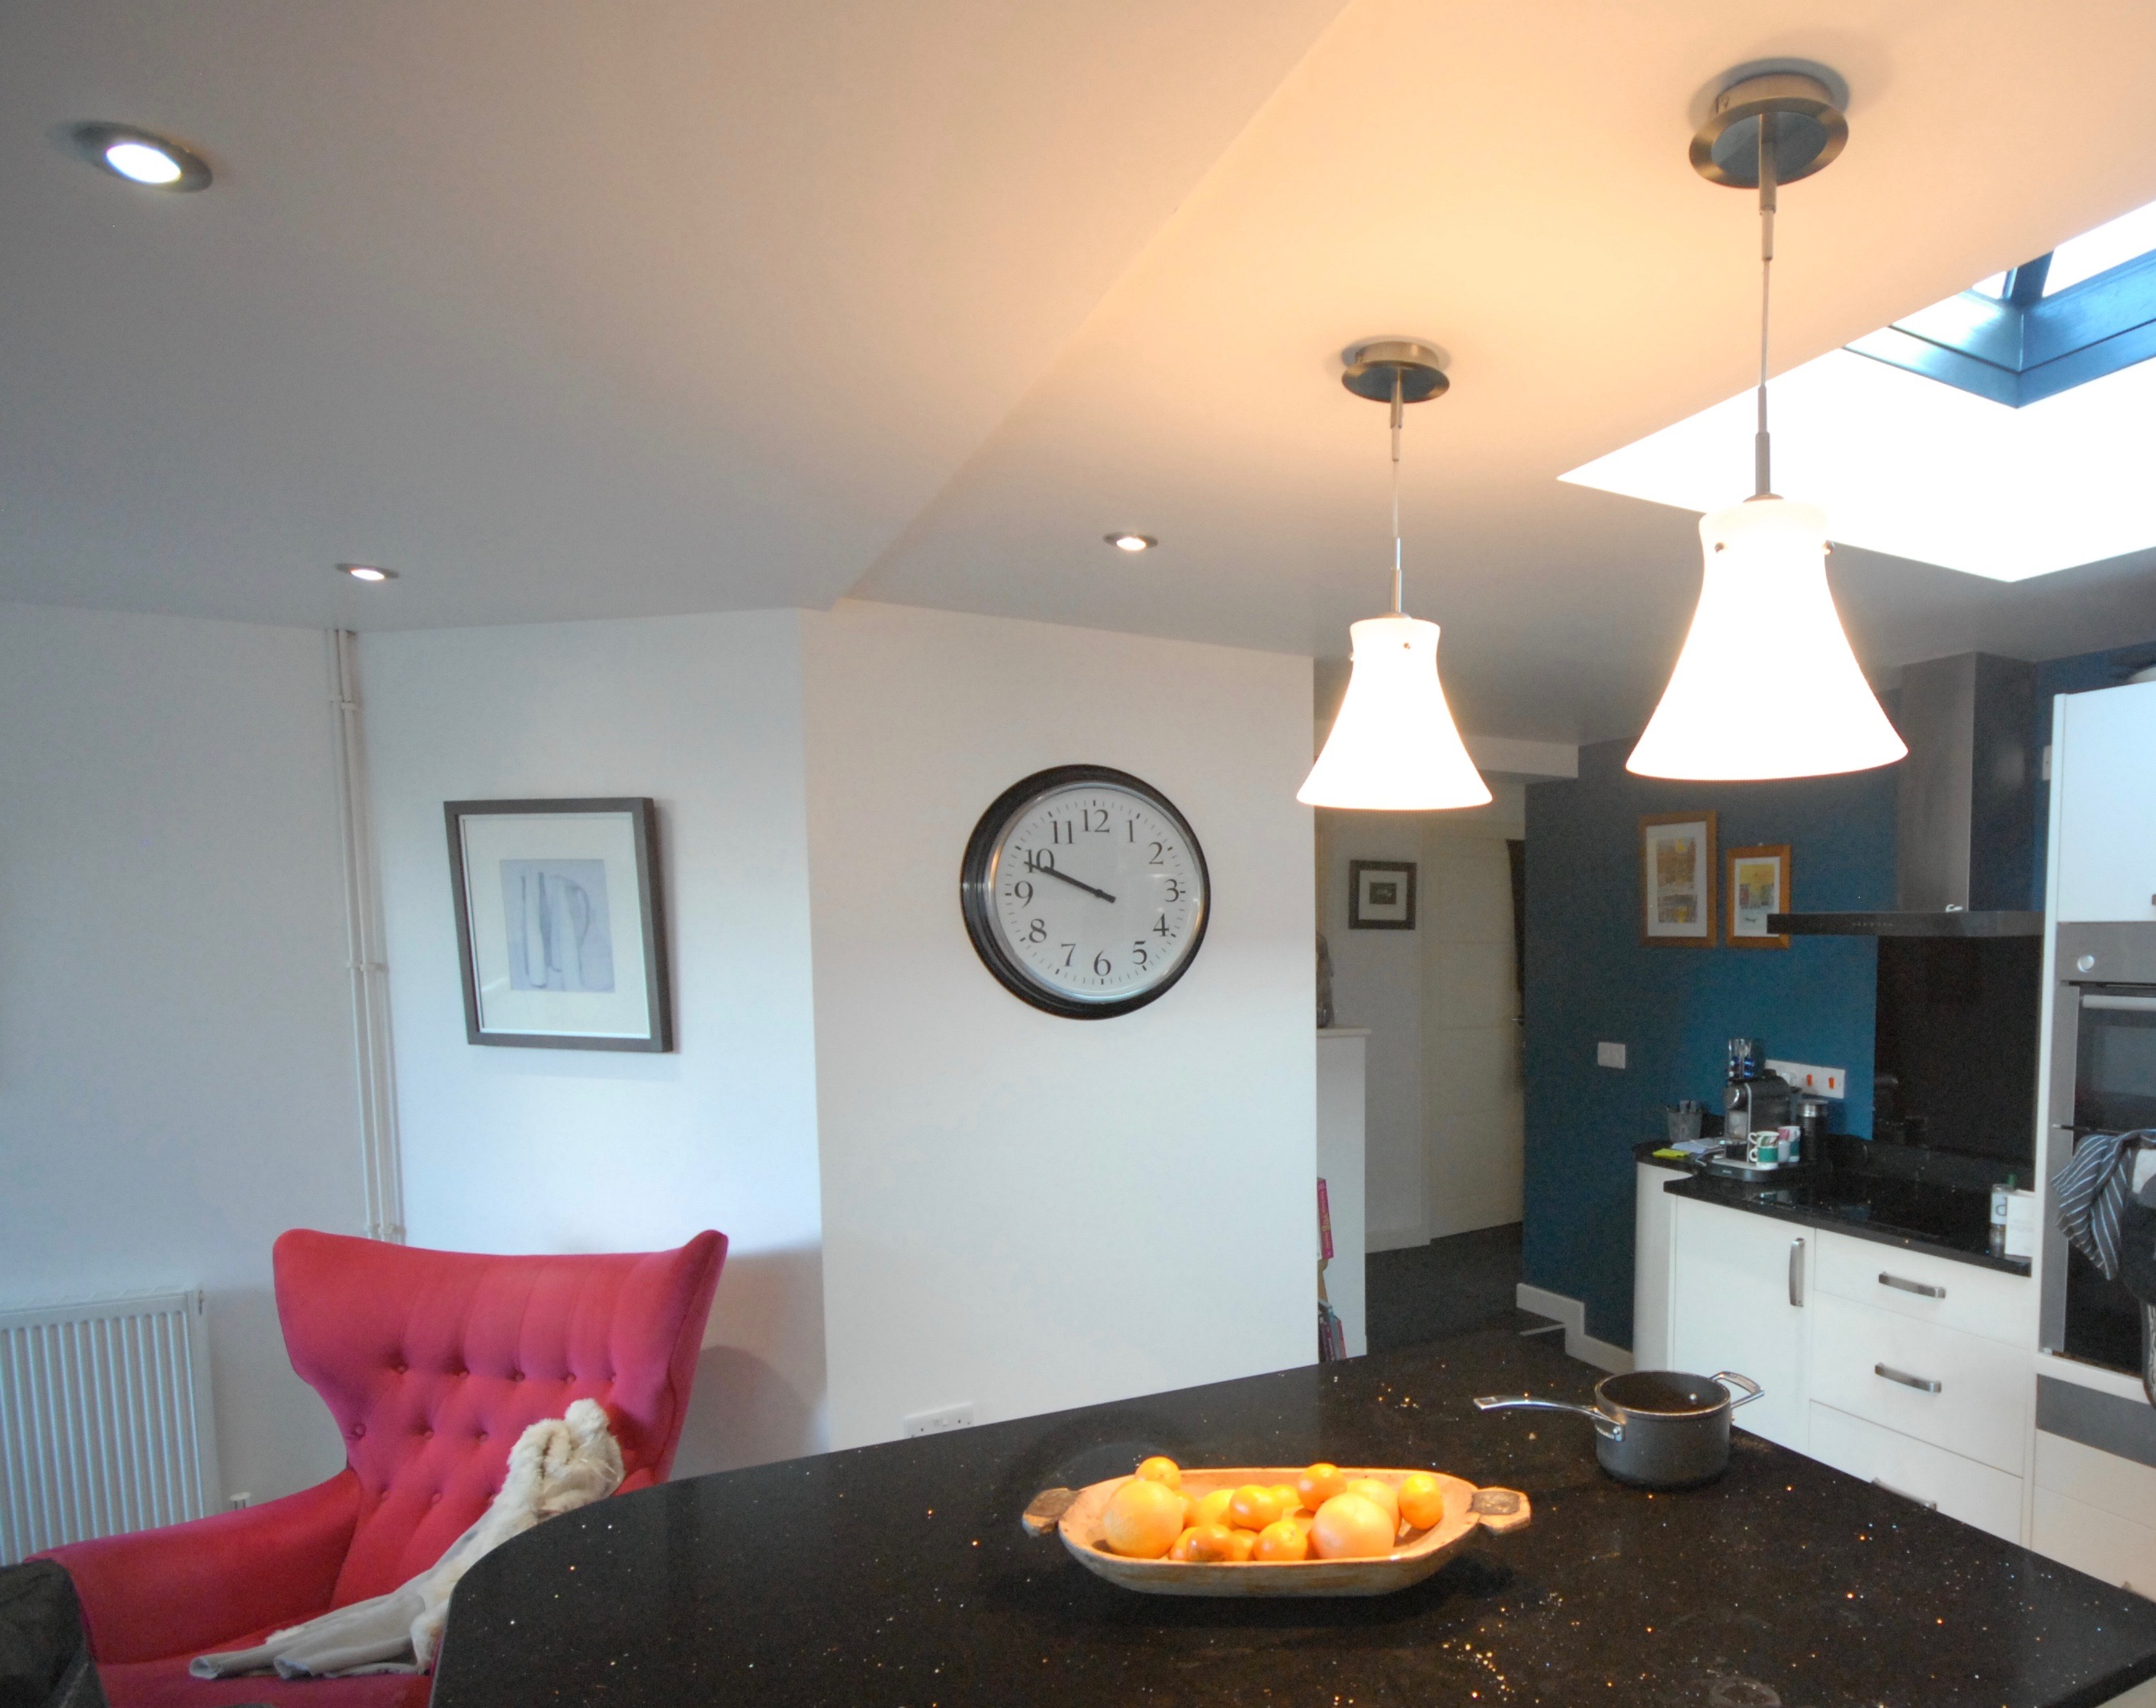 This kitchen required a full clean down of the walls and ceiling, prior to being given a full decorative makeover. Using pure brilliant white and a contrasting teal colour to the cooking area.